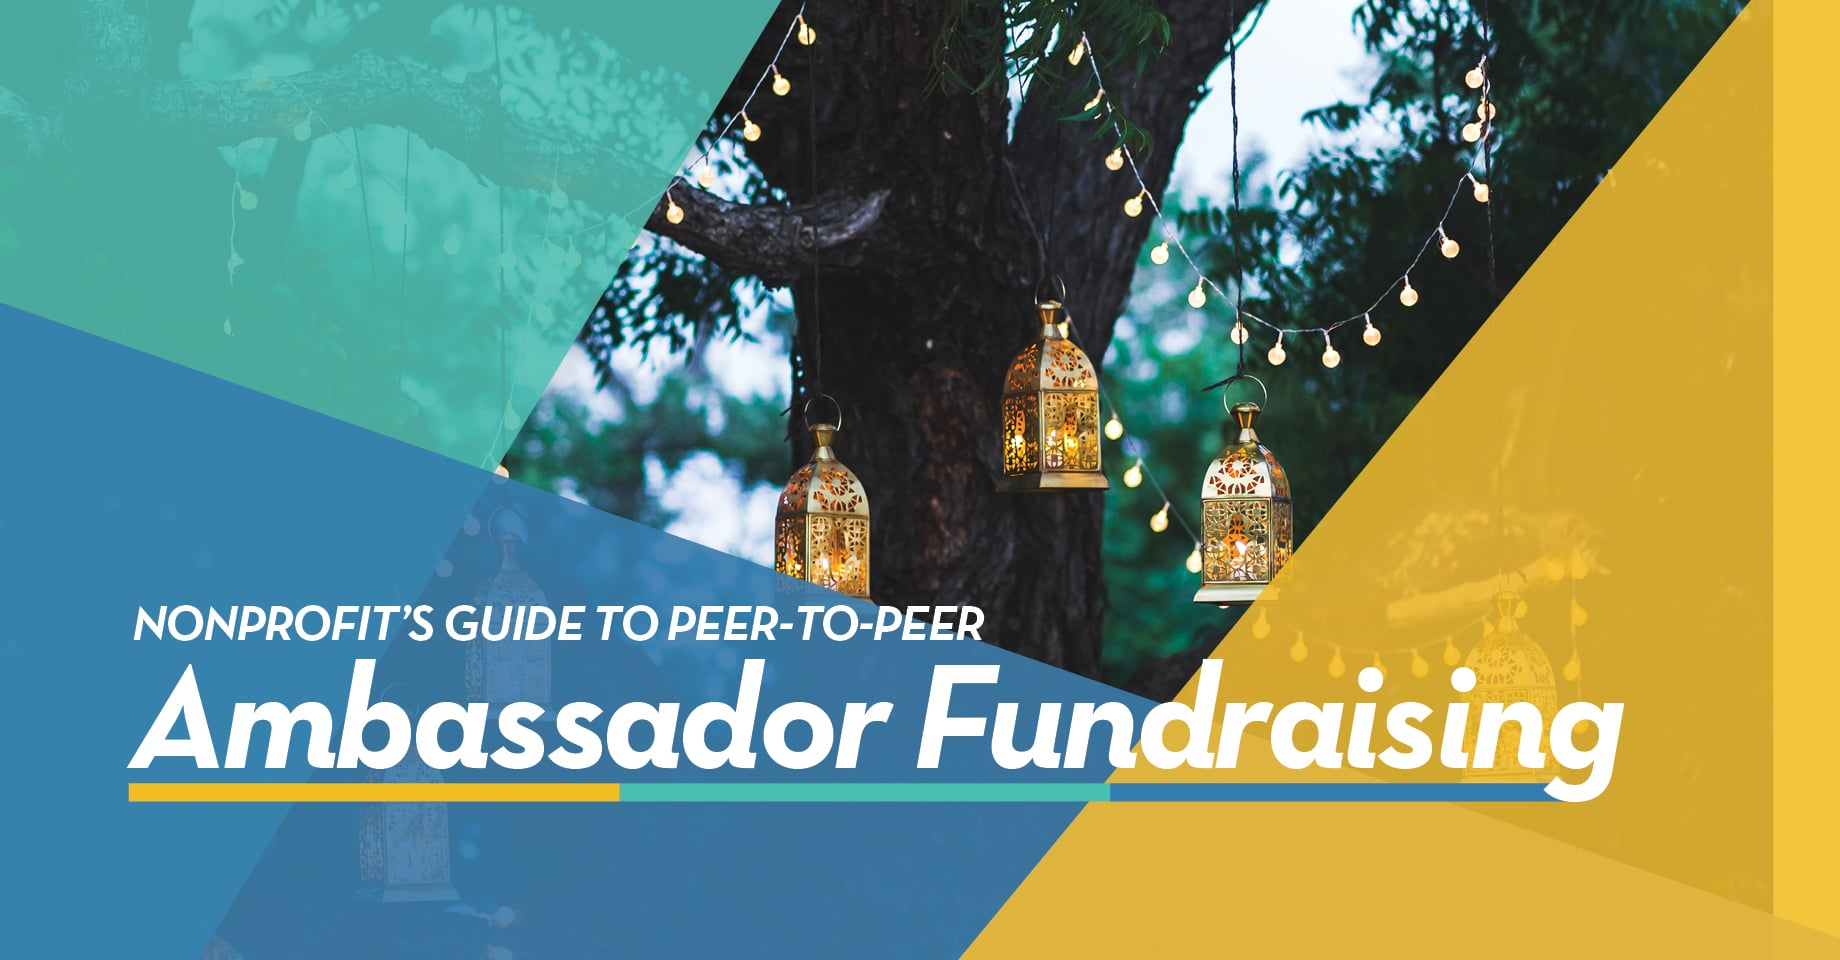 Nonprofit Guide to Peer-to-Peer Ambassador Fundraising